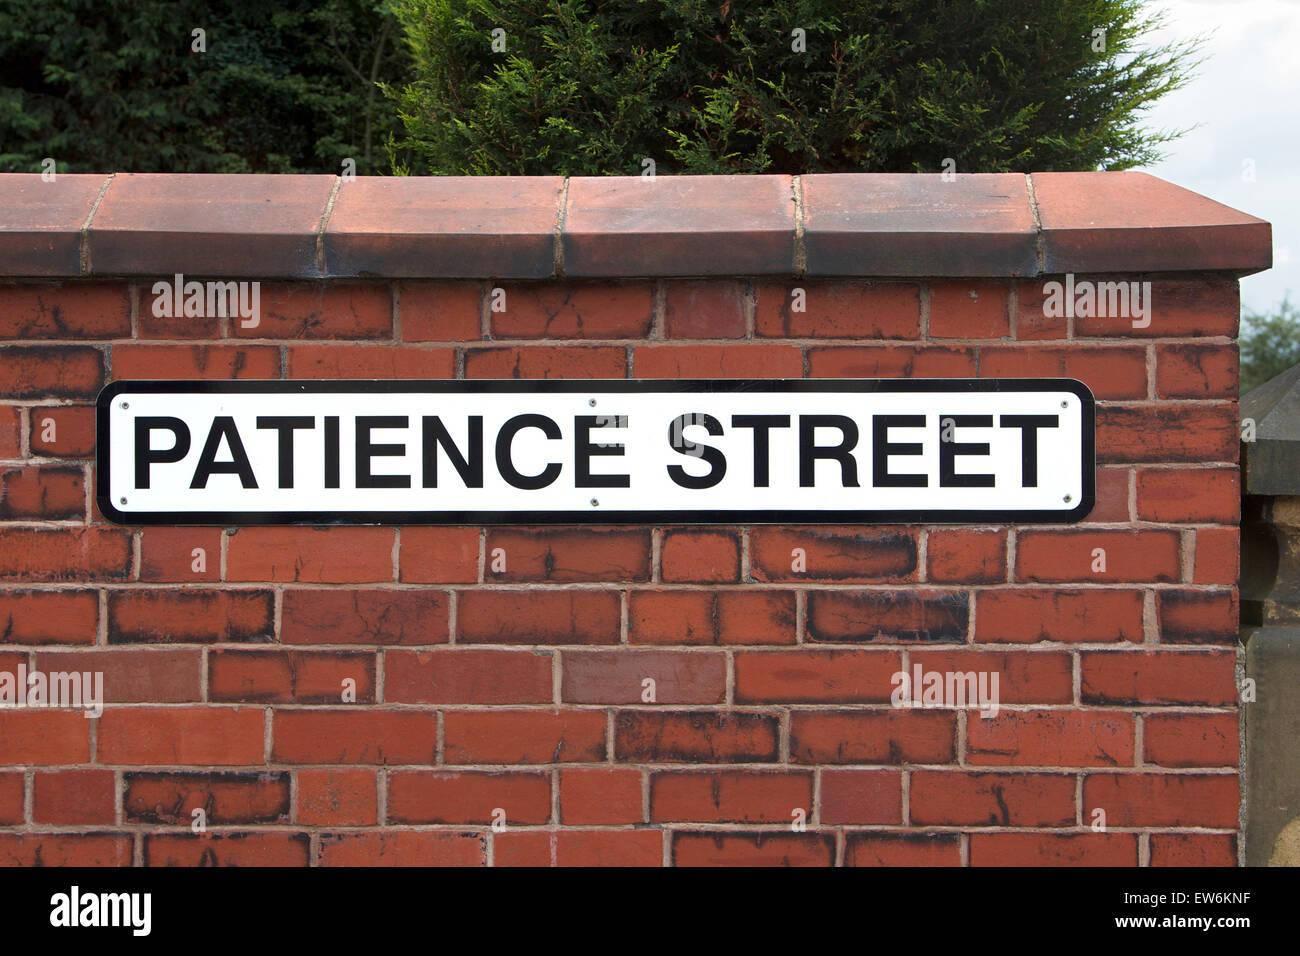 'Patience' street sign on red brick wall - Stock Image